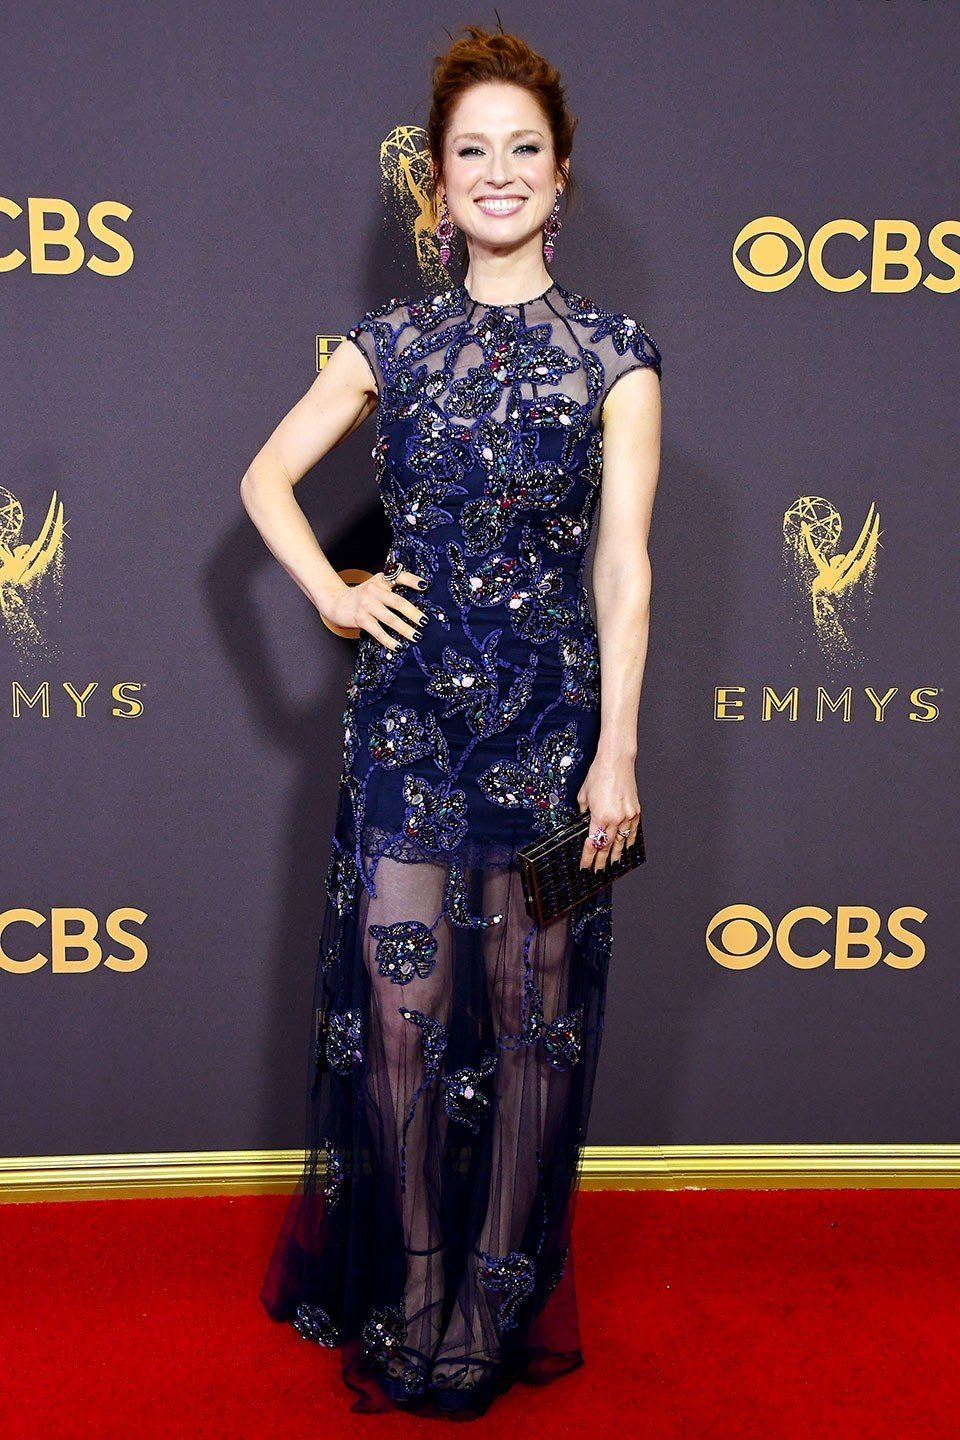 Ellie Kemper of The Unbreakable Kimmy Schmidt in Jenny Packham